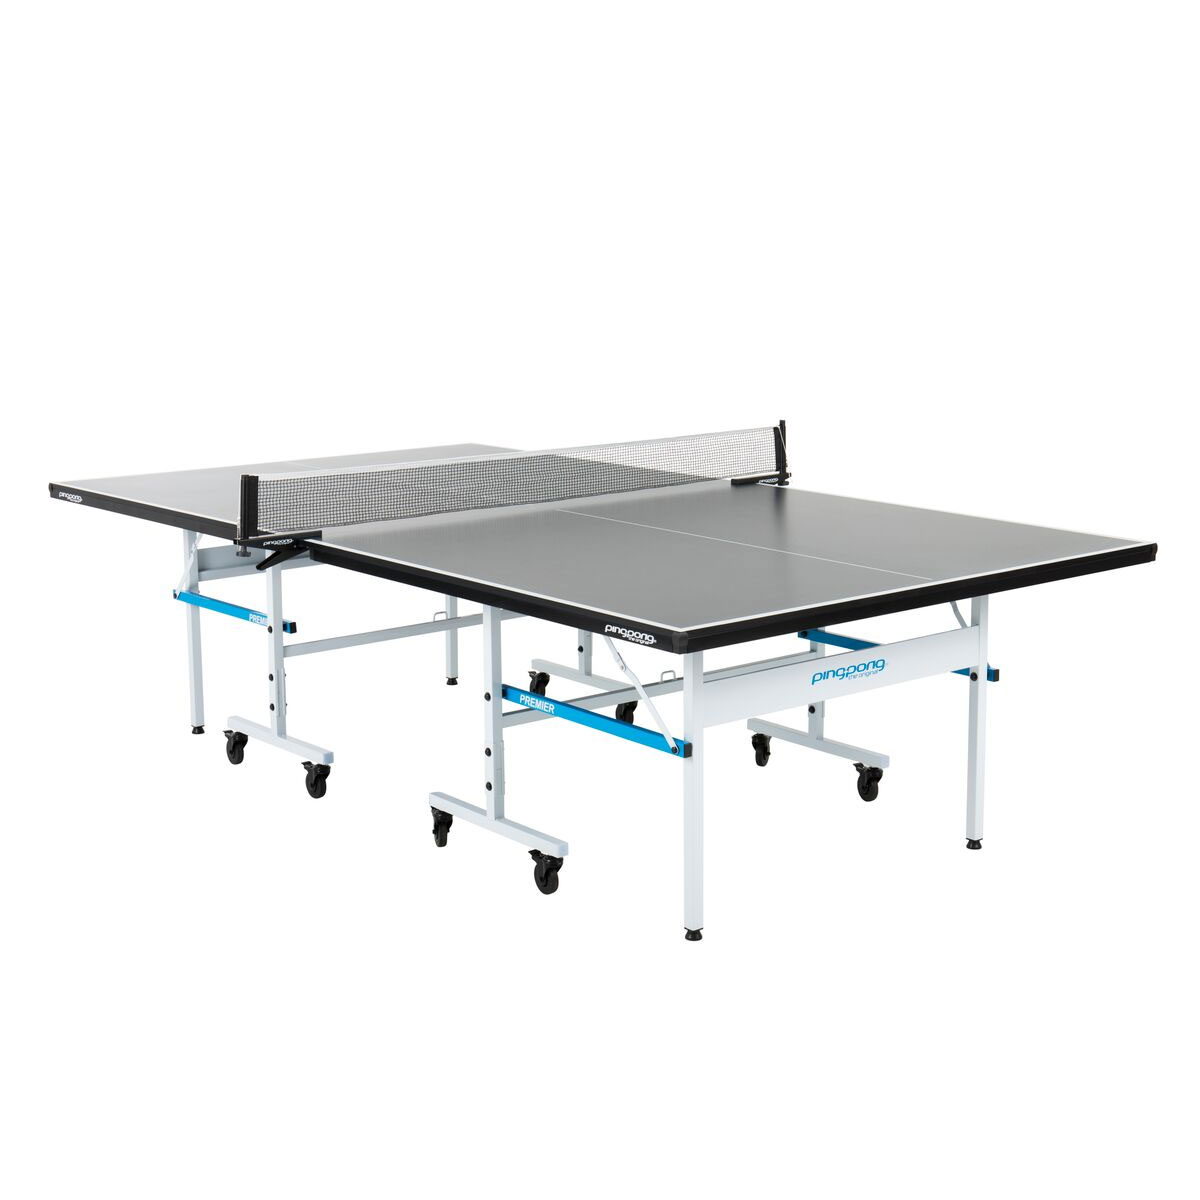 Ping Pong Premier Indoor Sport Regulation Size Ping Pong Folding Game Table by Ping-Pong